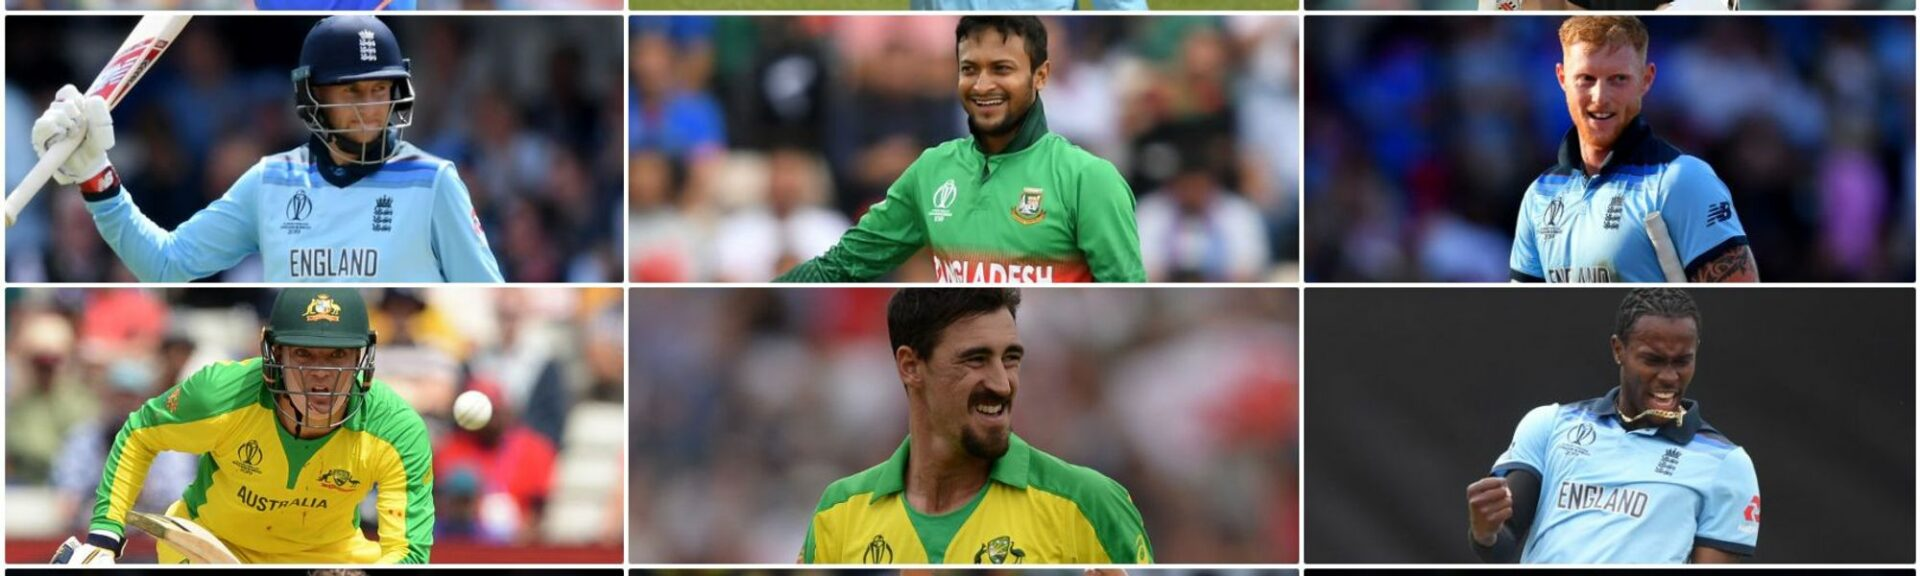 World Cup 2019: ICC picks best 11 of the tournament, 2 Indians included